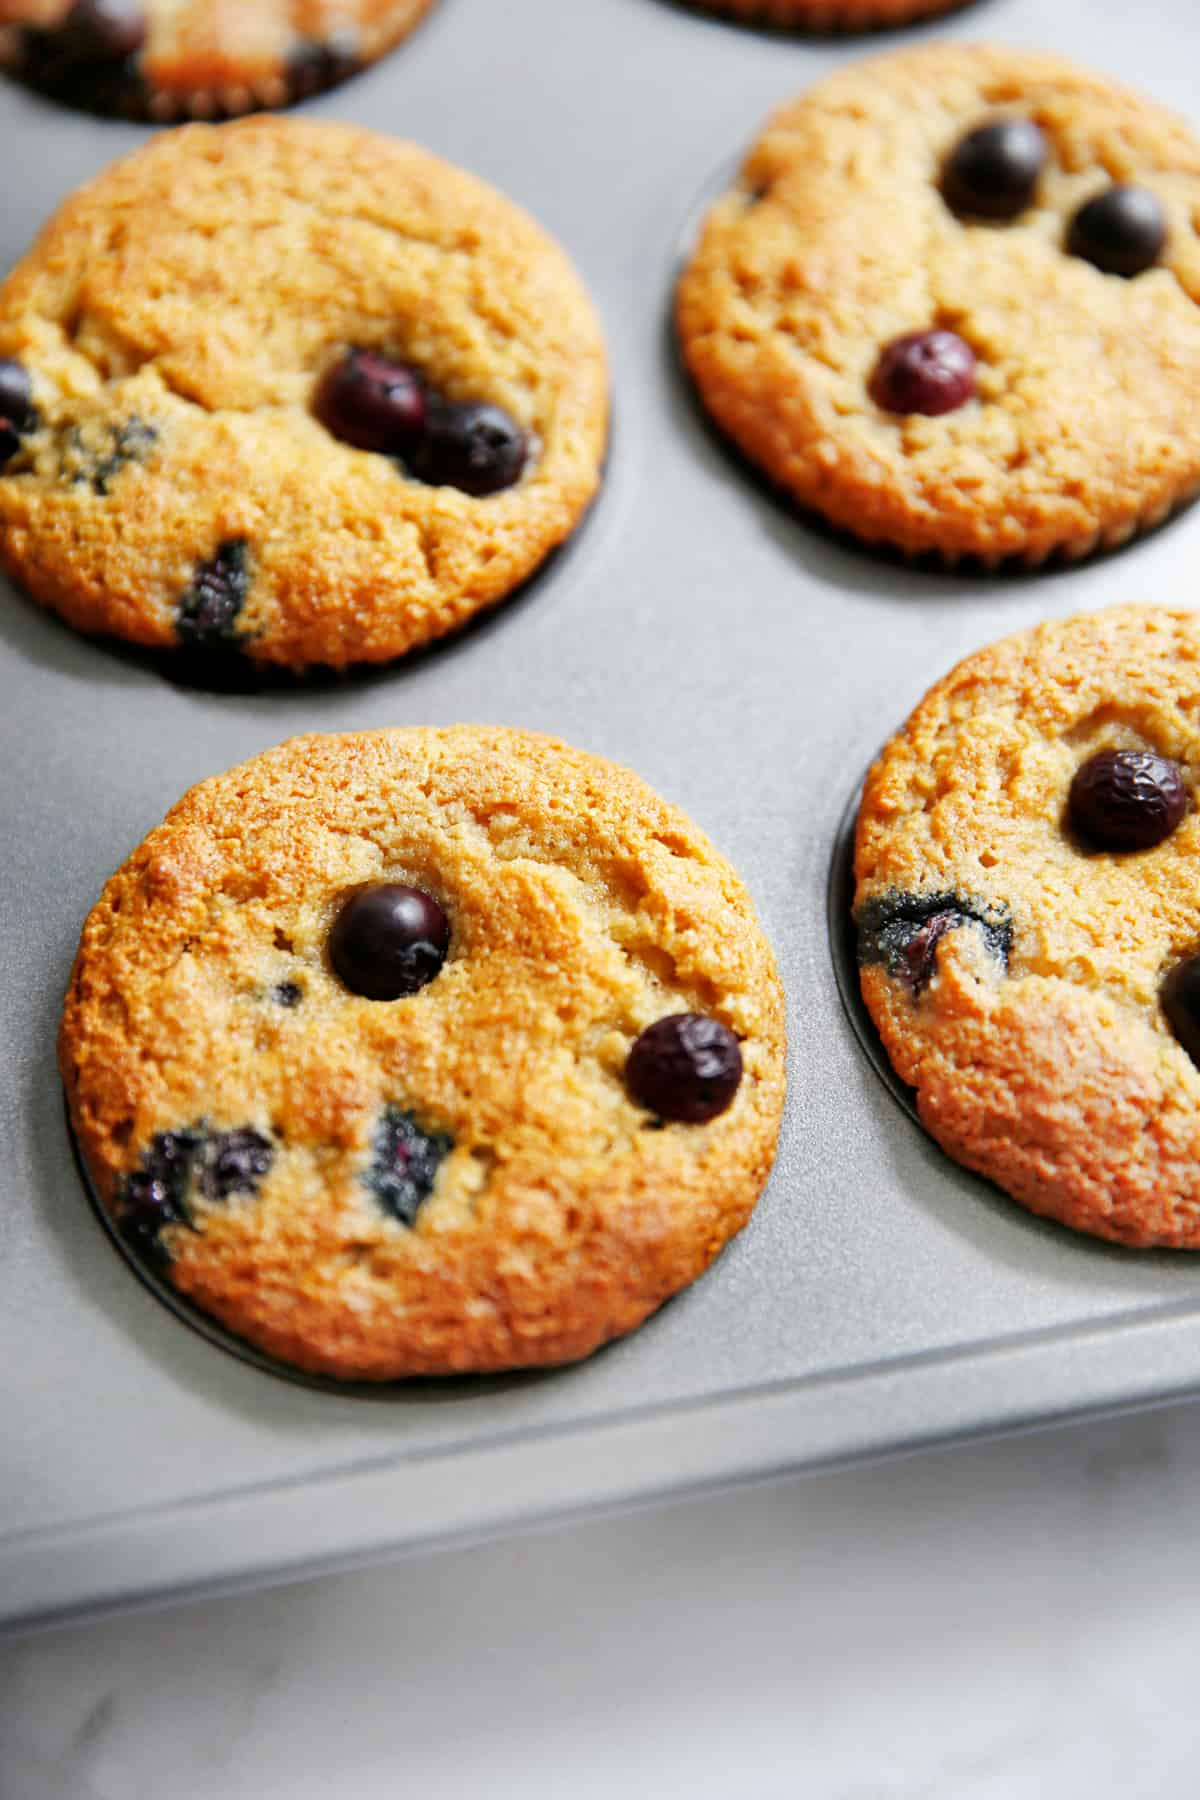 Paleo blueberry muffins in the muffin tin